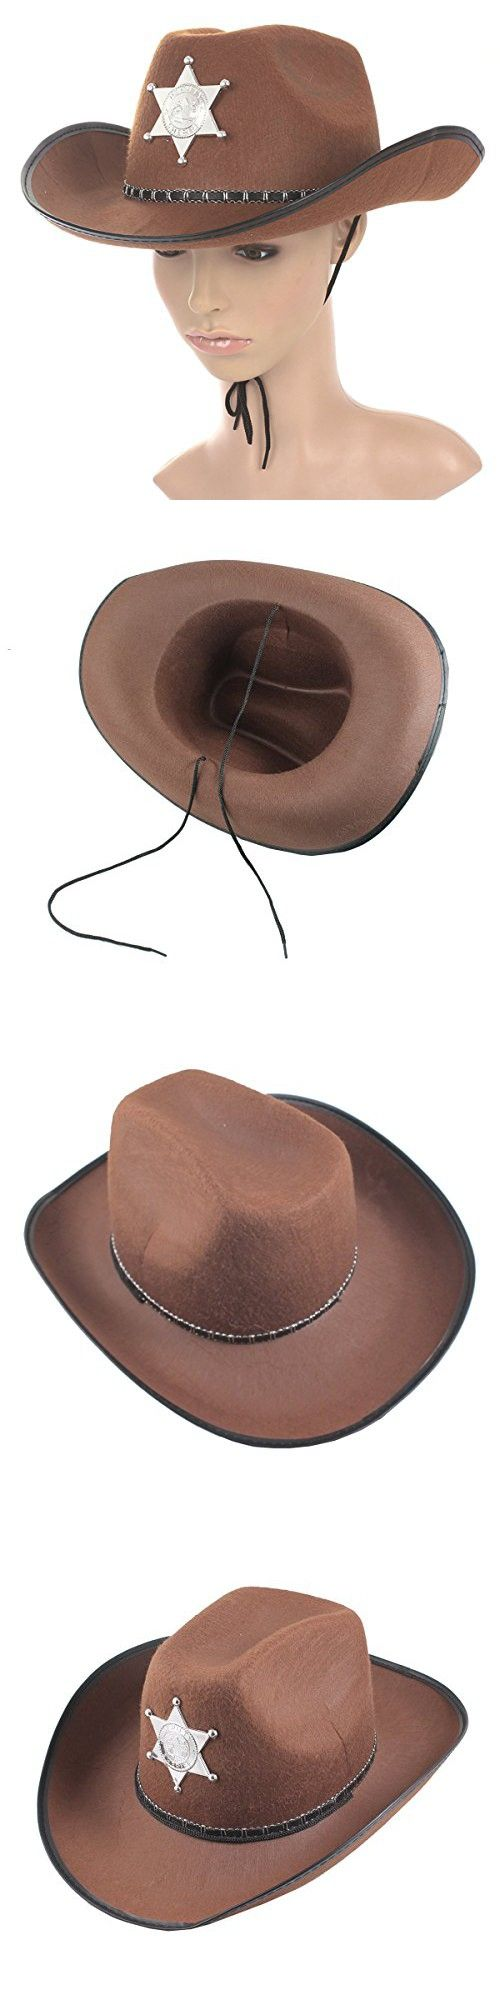 Tinksky Cowboy Western Wild Hat Fancy Dress Halloween Party Costume Props Gift Brown